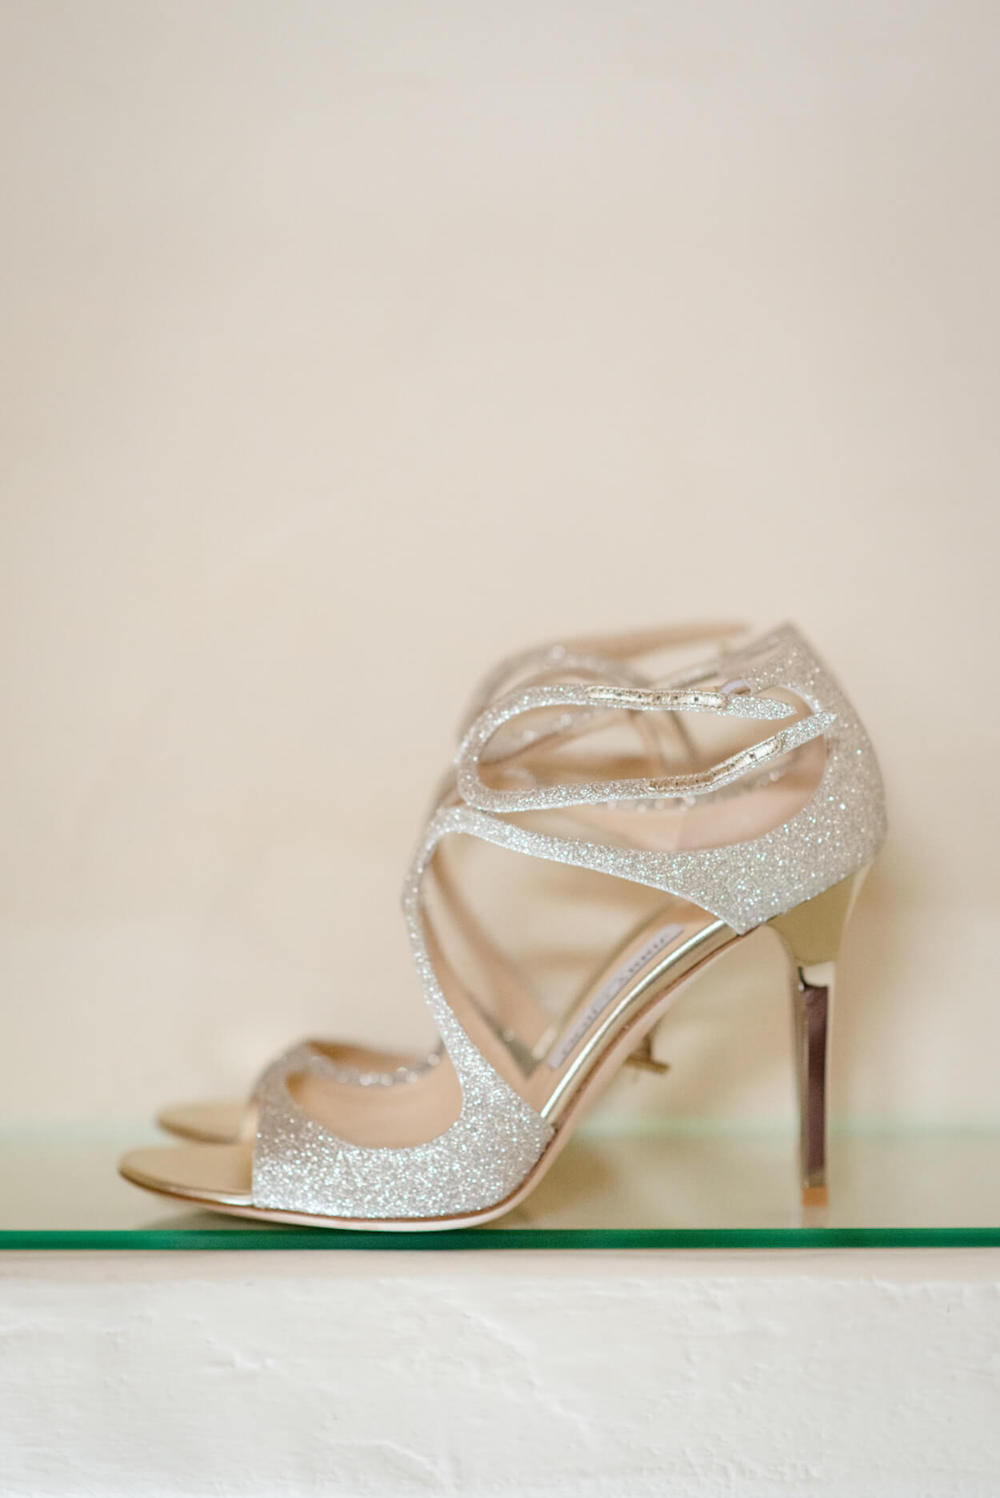 jimmy choo wedding high heals gold glitter